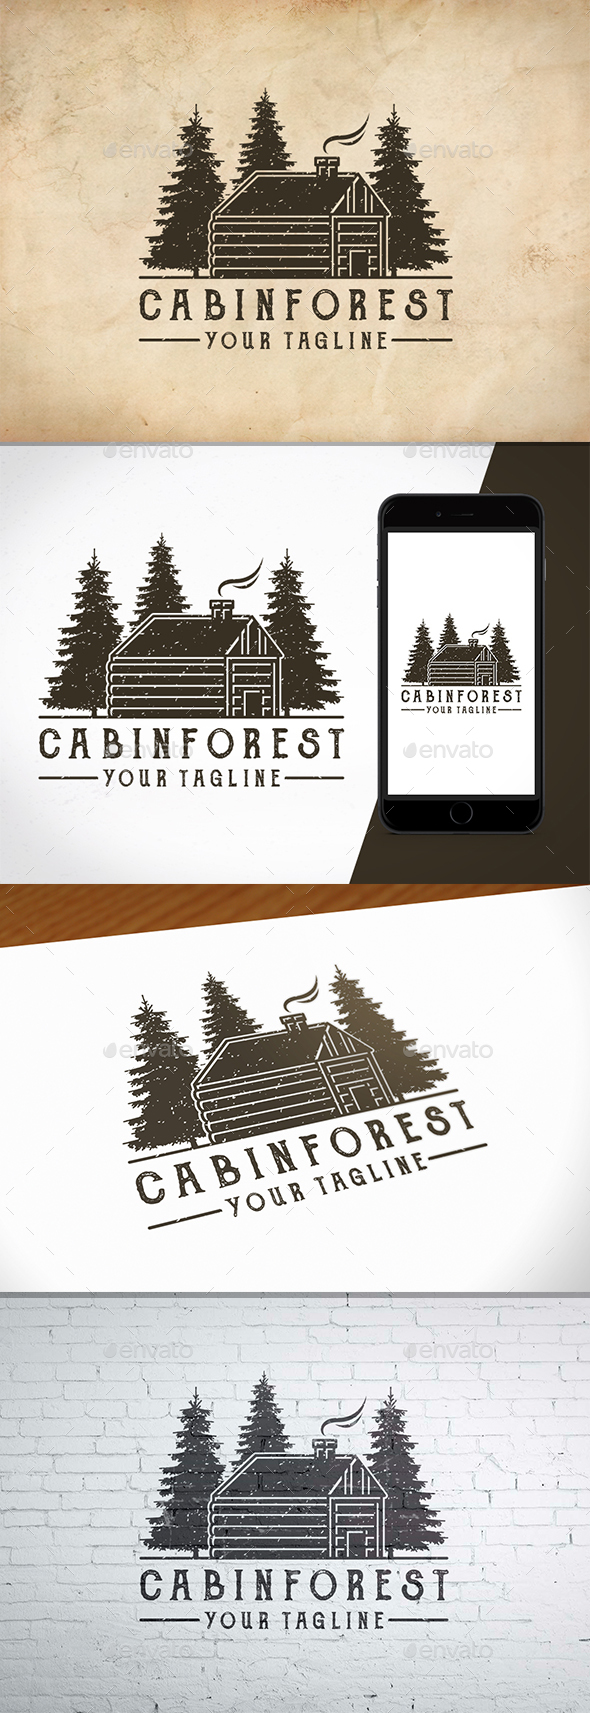 Cabin Forest Logo Template - Nature Logo Templates